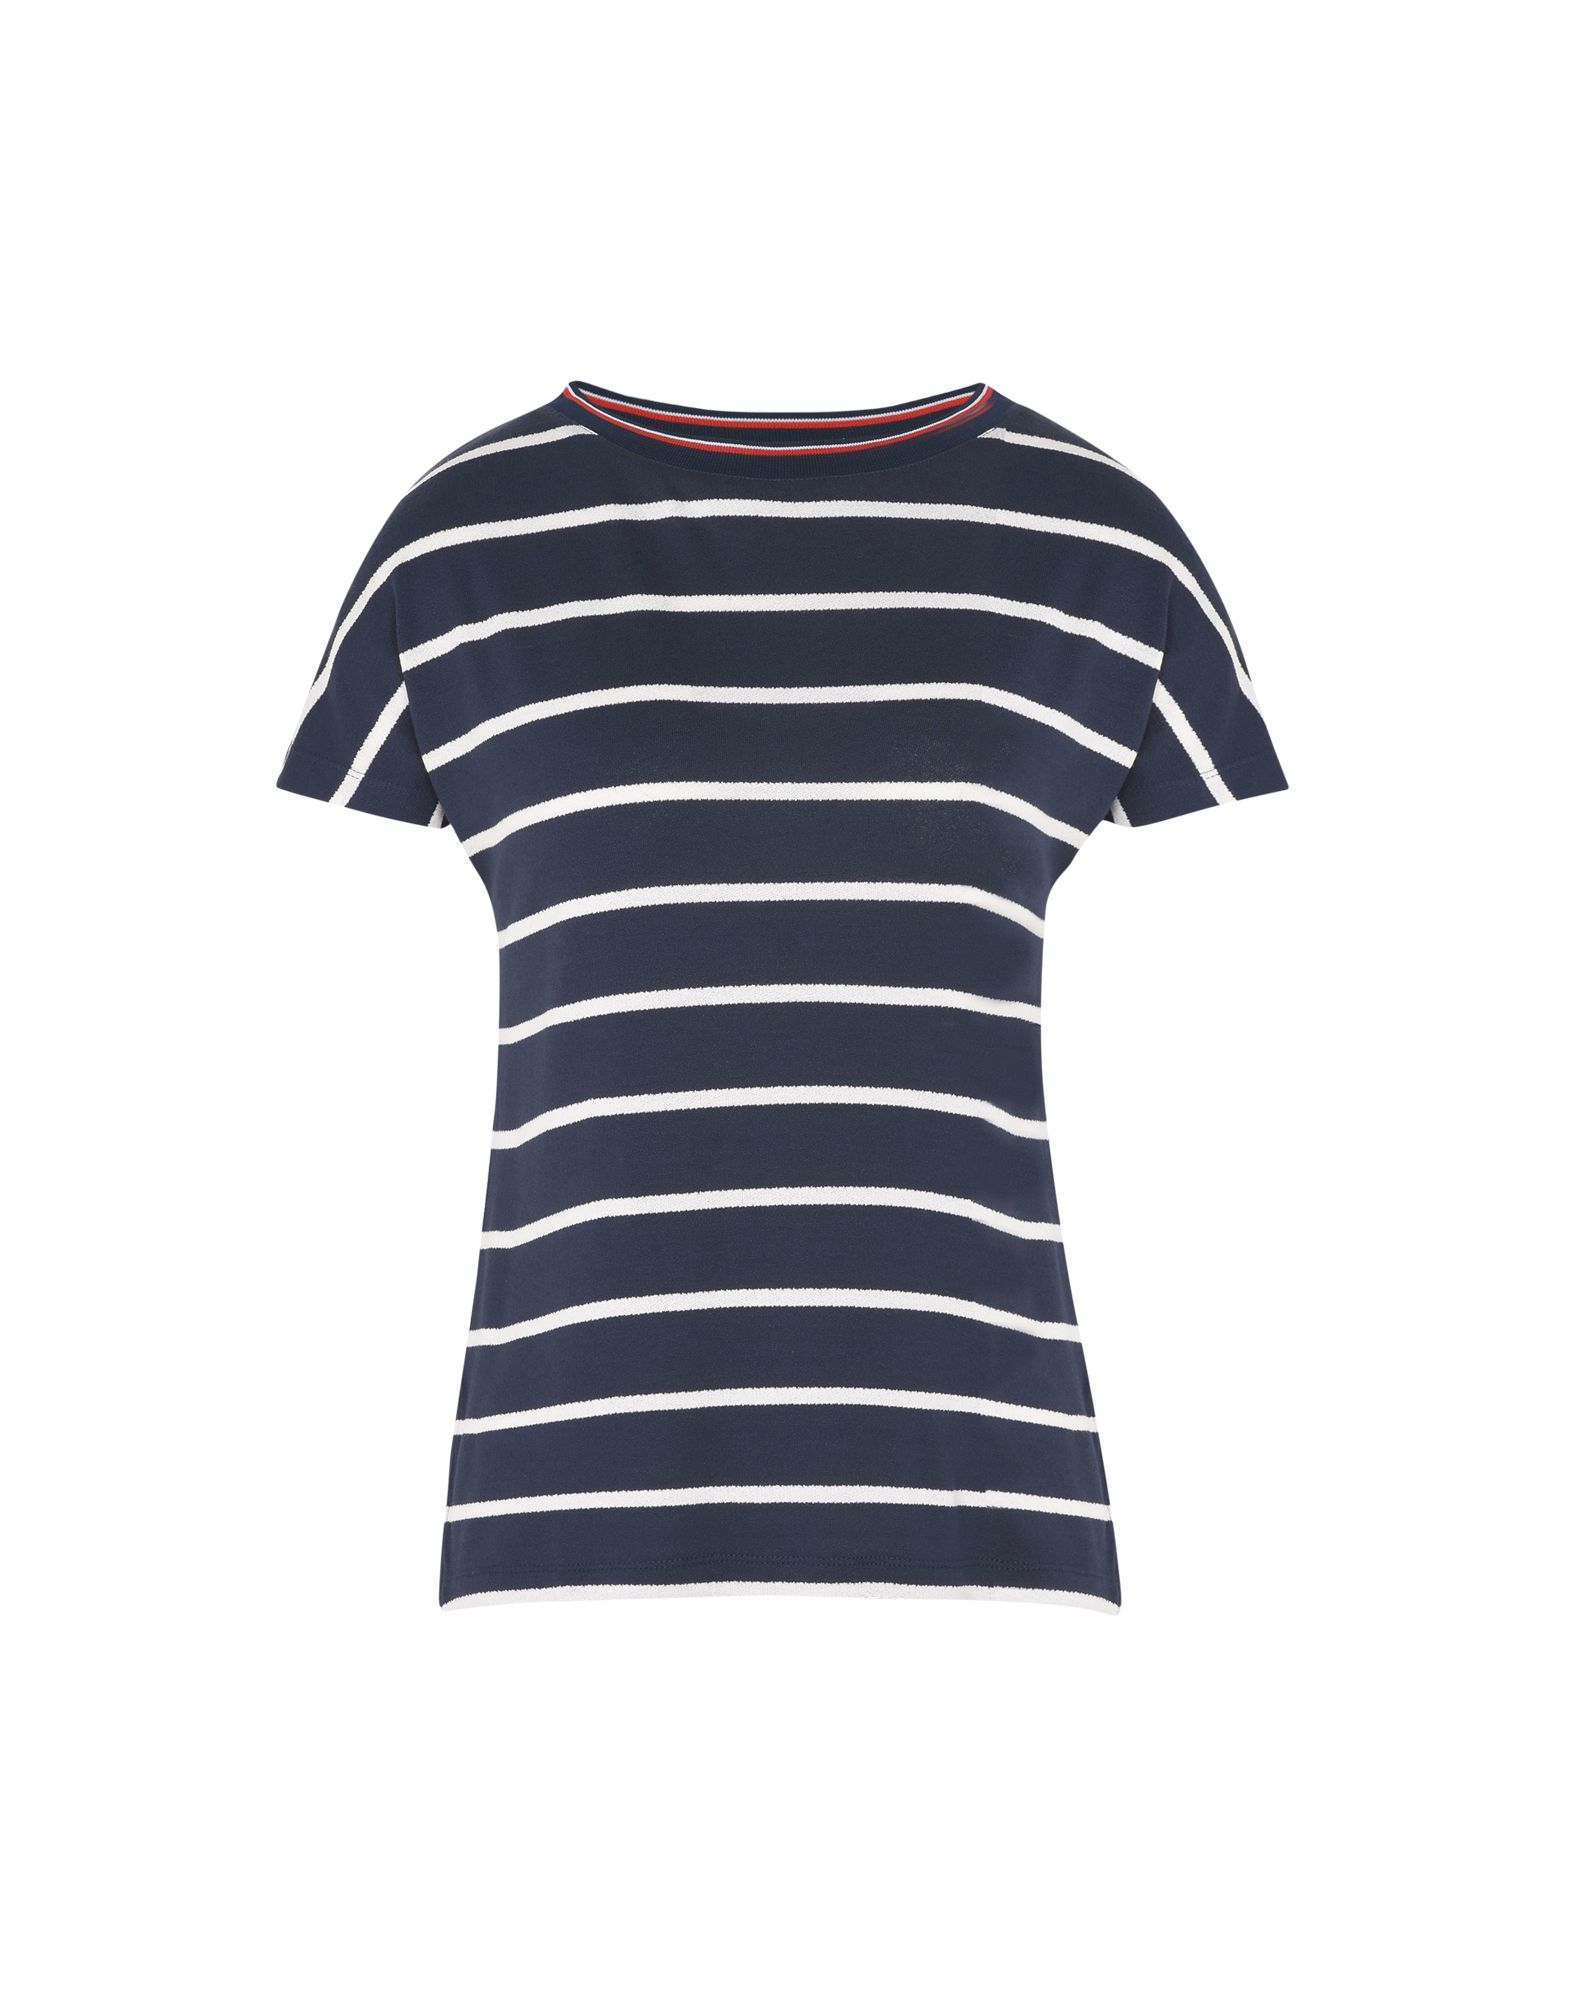 TOMMY HILFIGER DENIM Футболка футболка tommy hilfiger denim tommy hilfiger denim to013ewufj70